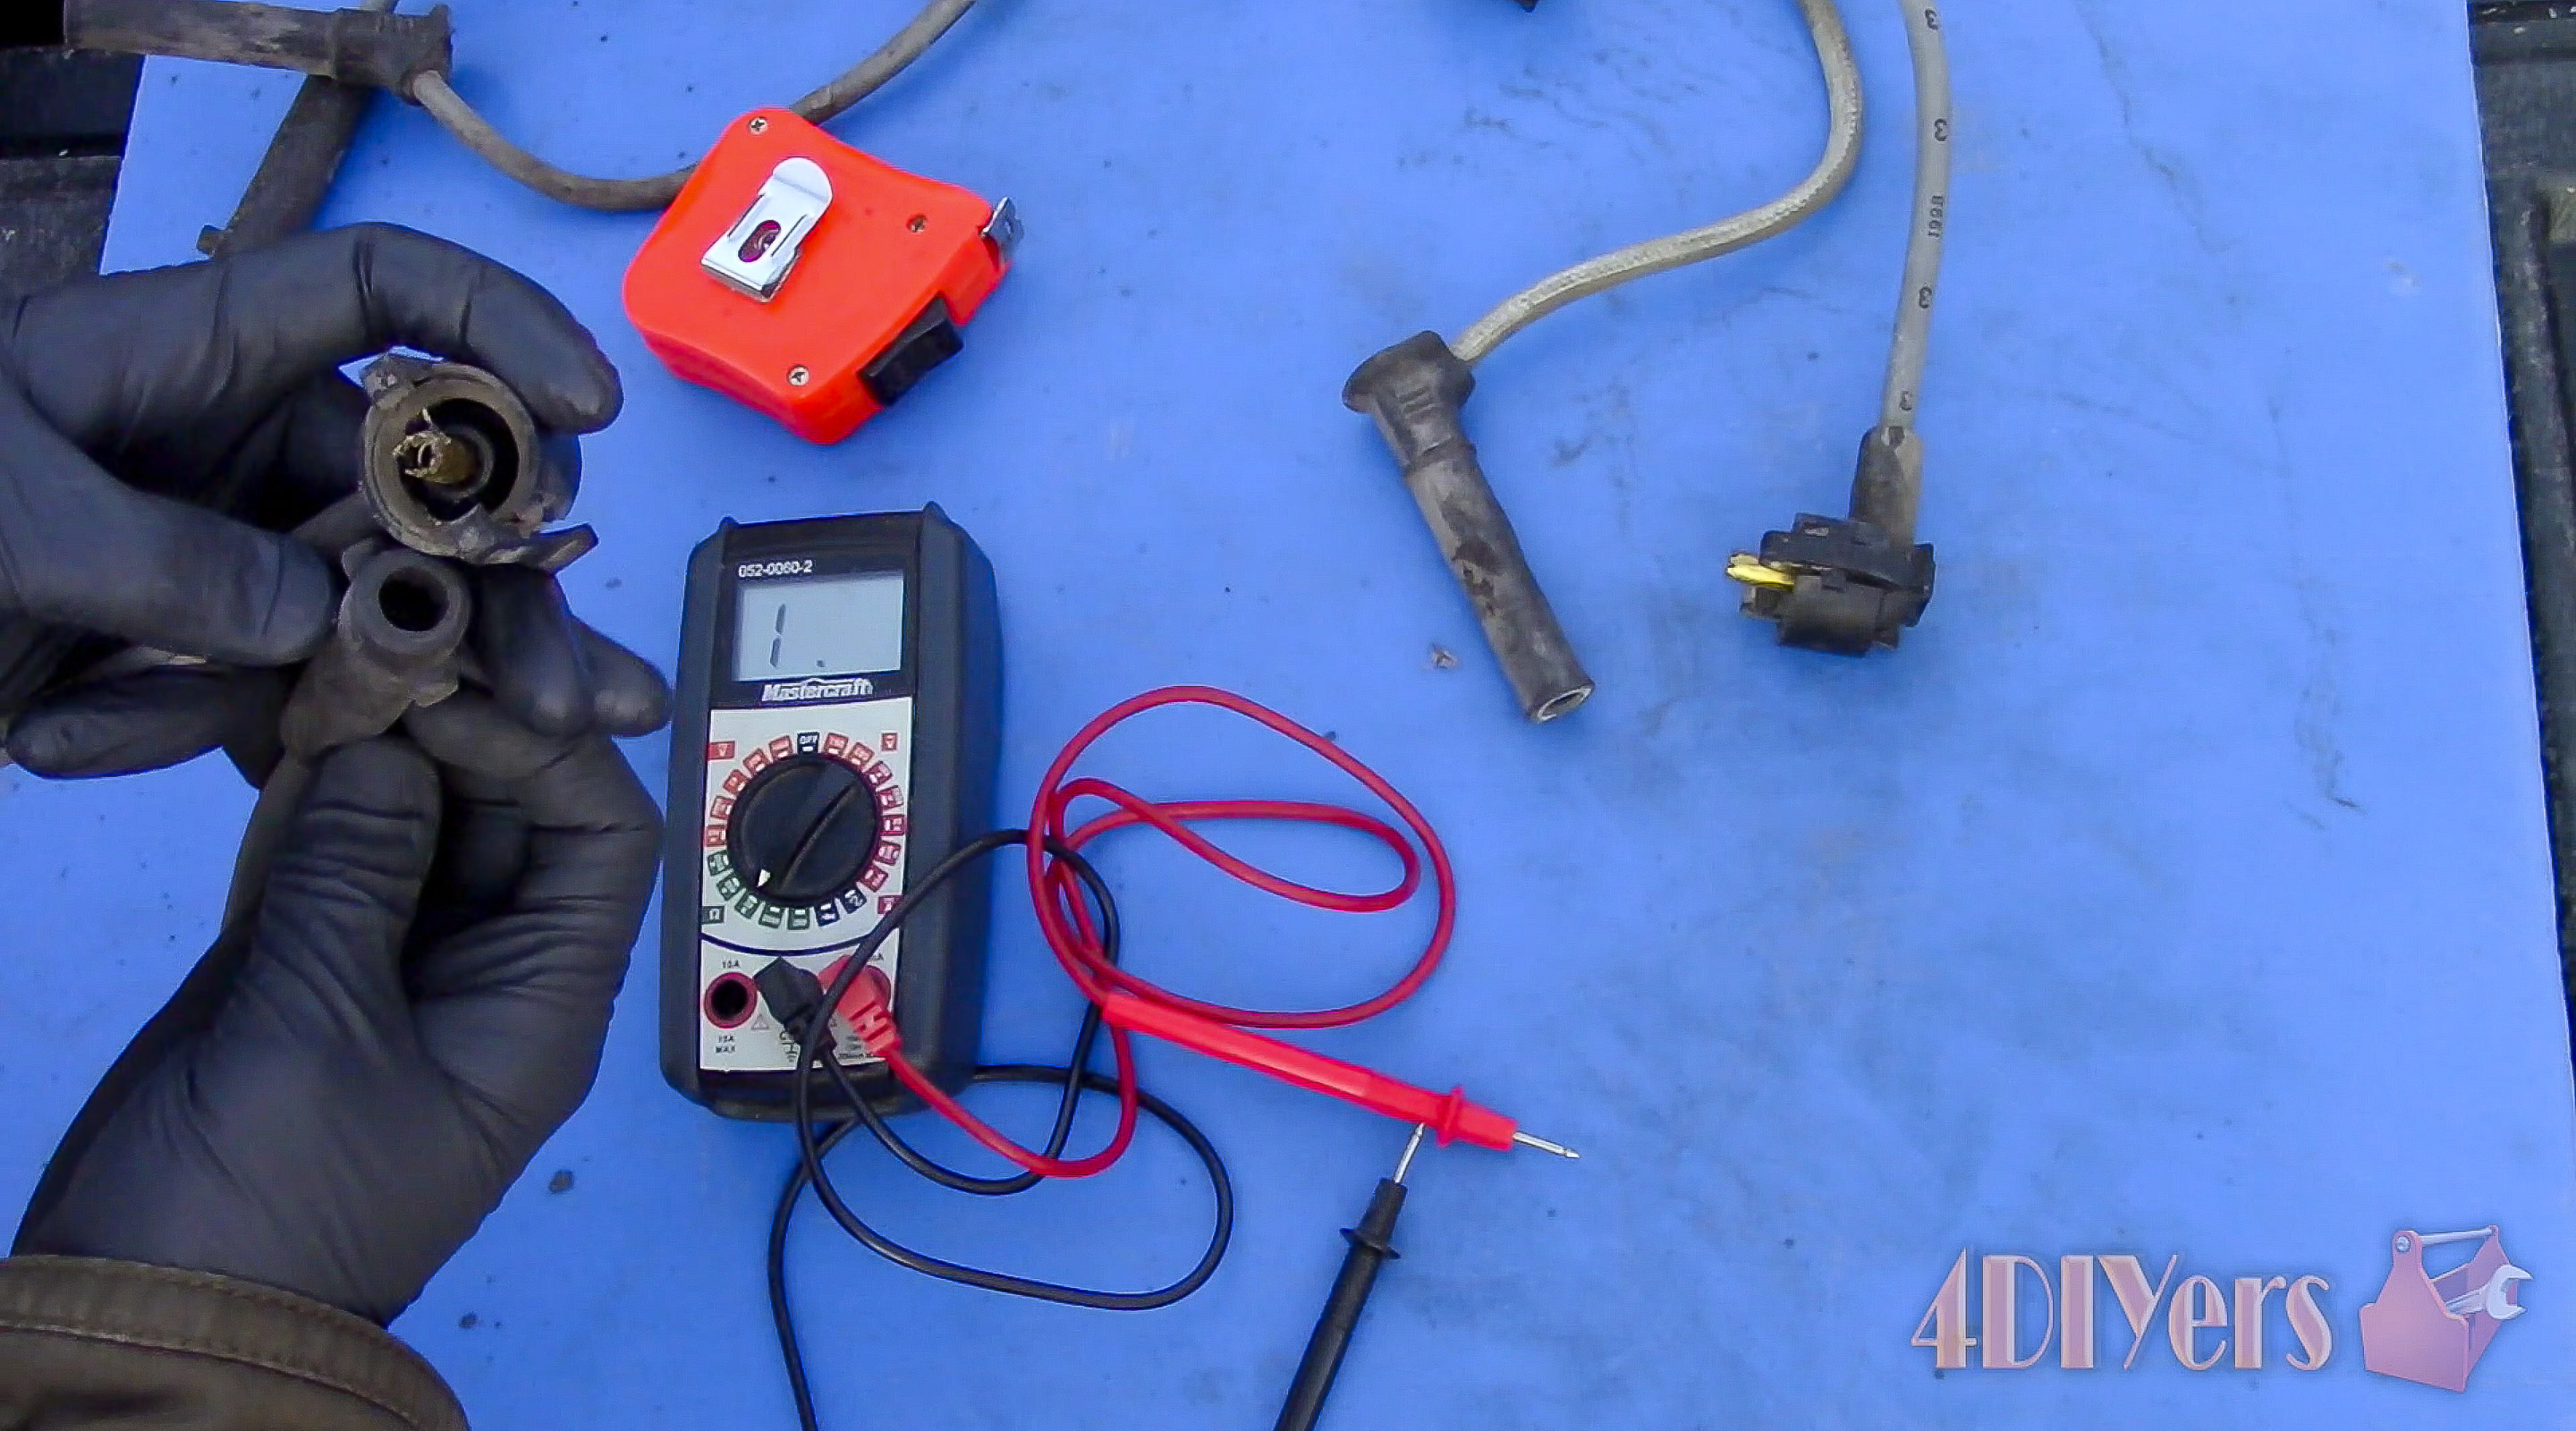 Picture of Multimeter Test With Old Wires